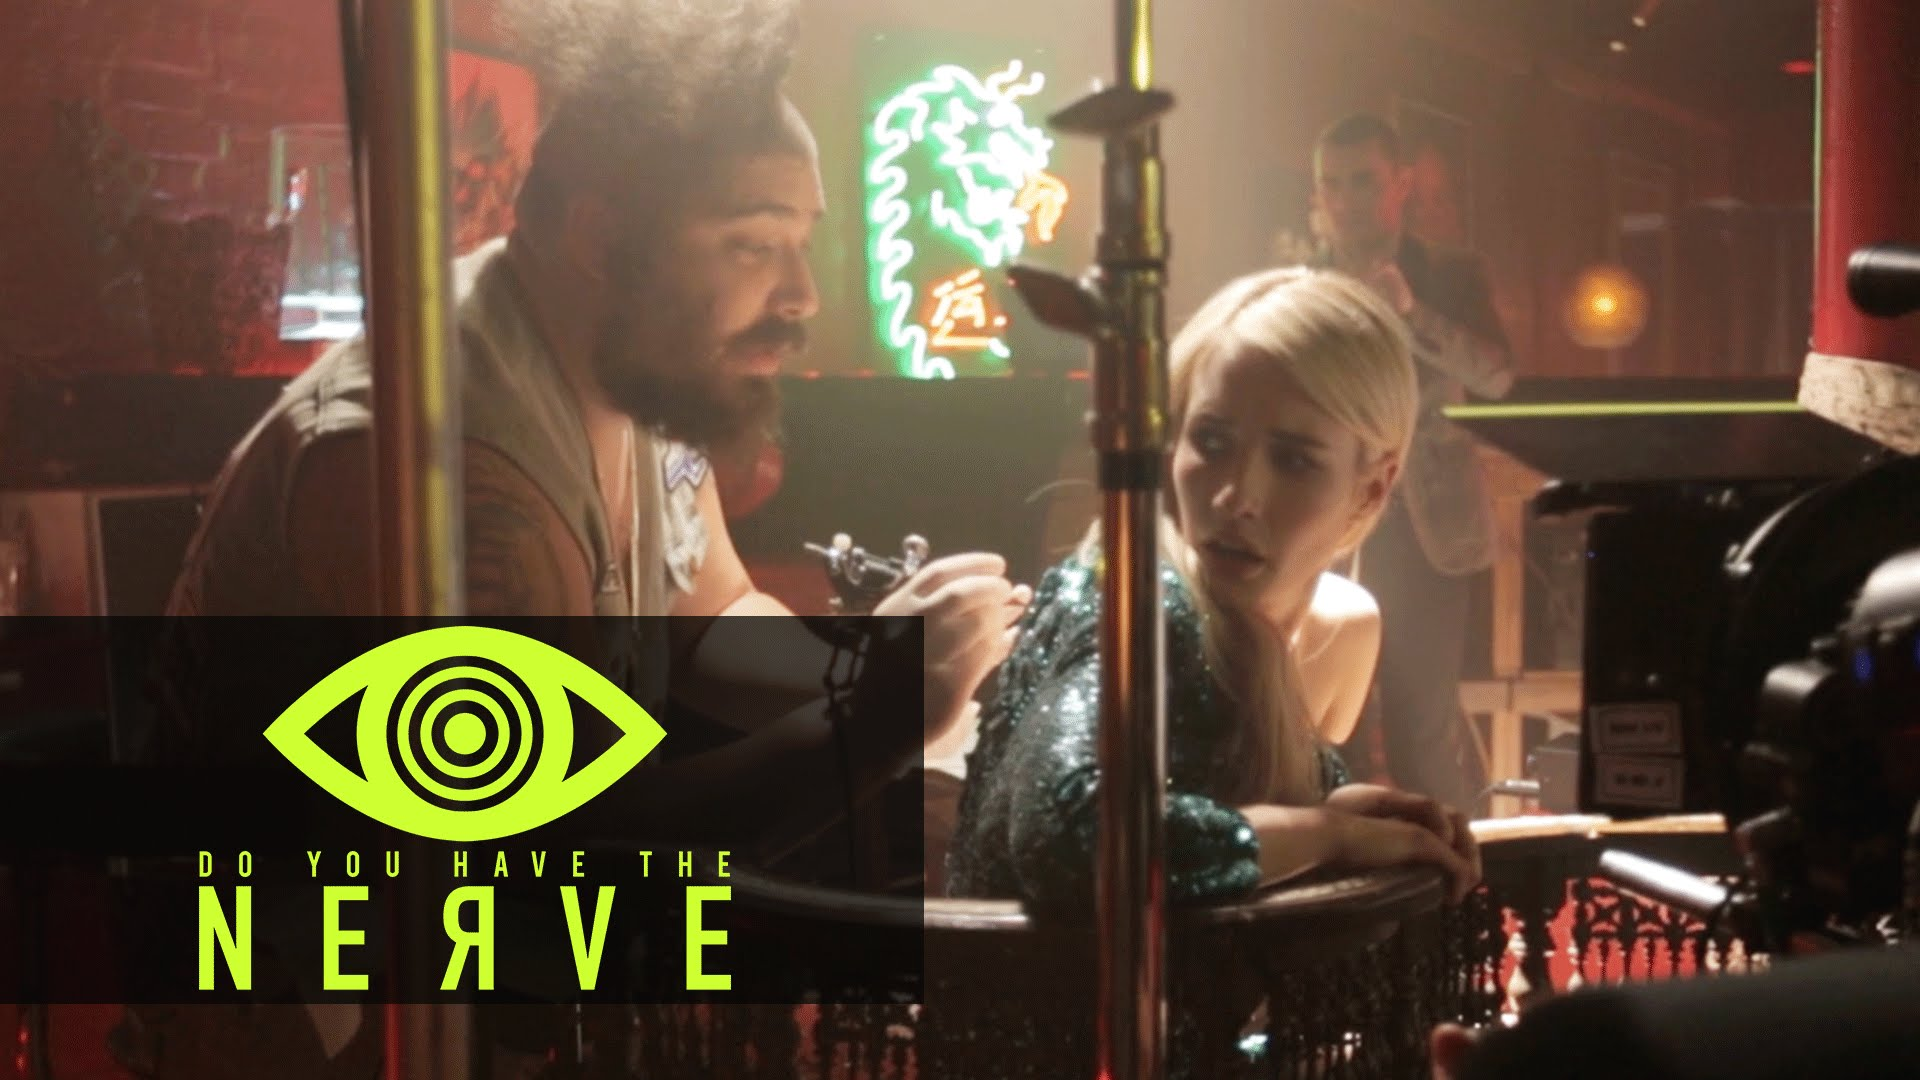 Nerve (2016 Movie) – The Fat Jew 'Tattoo' Behind The Scenes